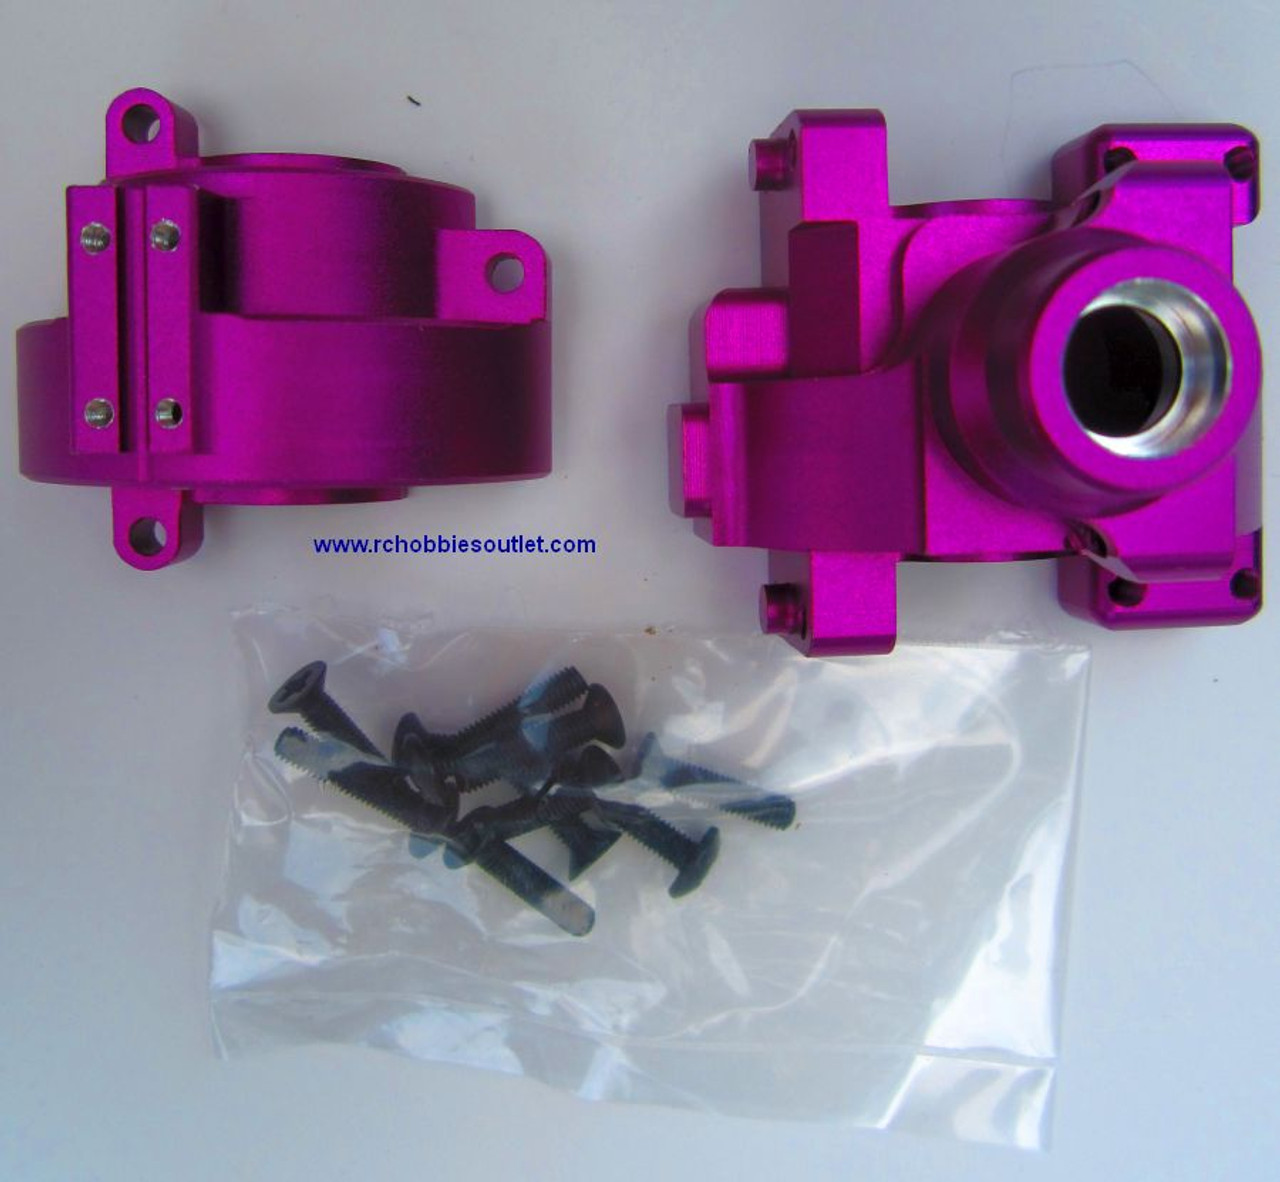 102075 1/10 Scale Gear Box Upgrade Parts for  HSP  Redcat etc